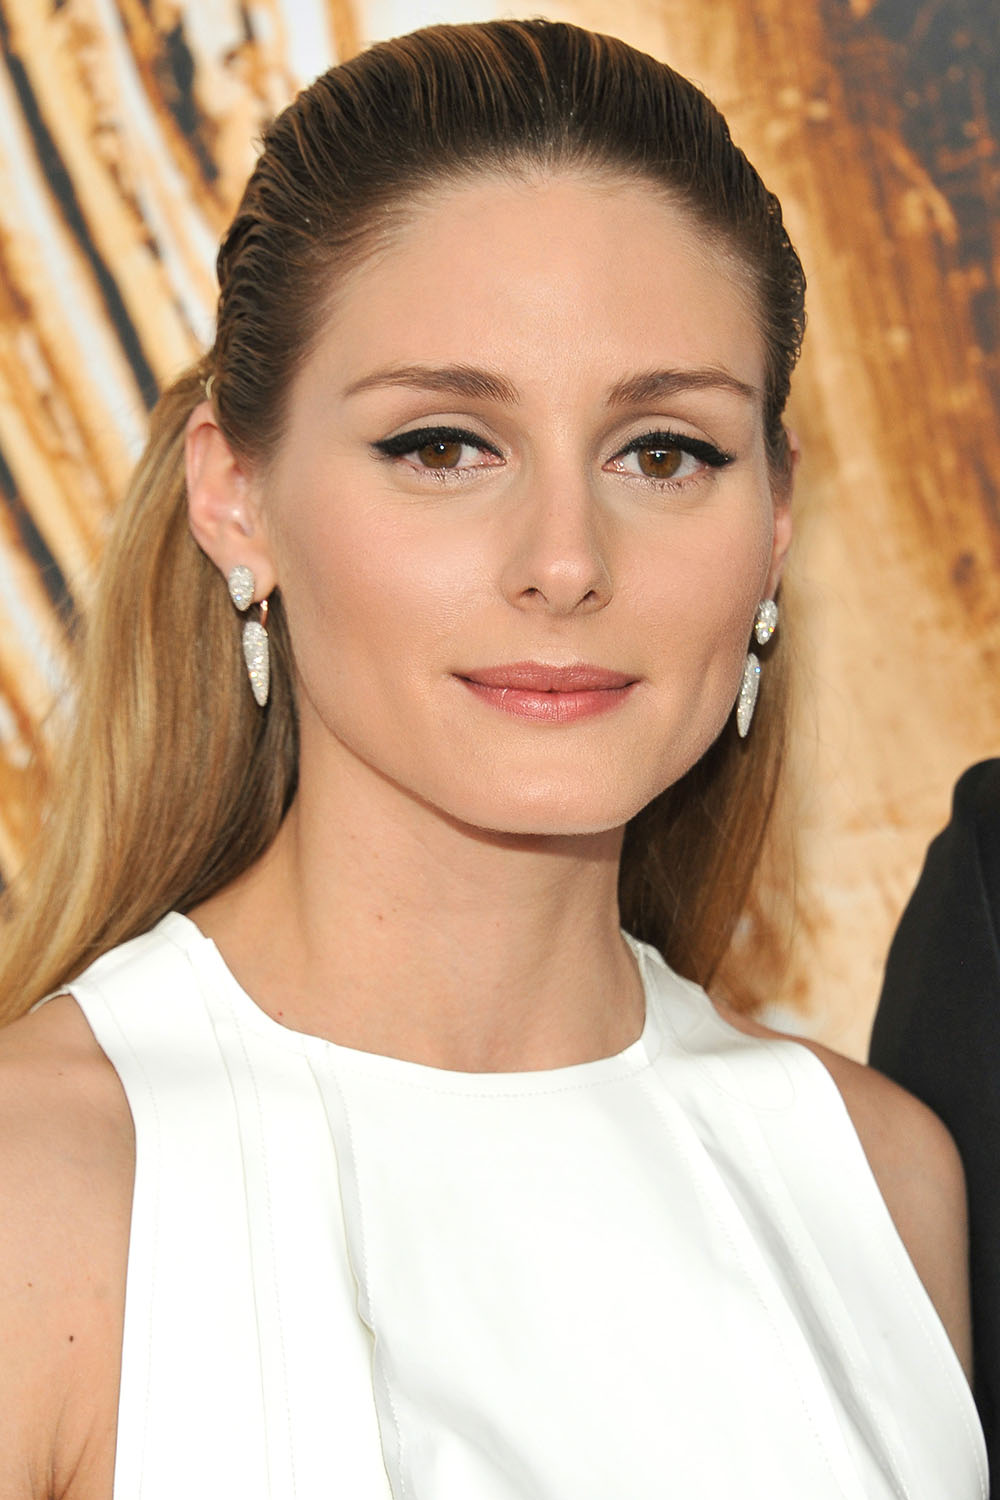 2016 CFDA Fashion Awards - Olivia Palermo slicked back hairstyle